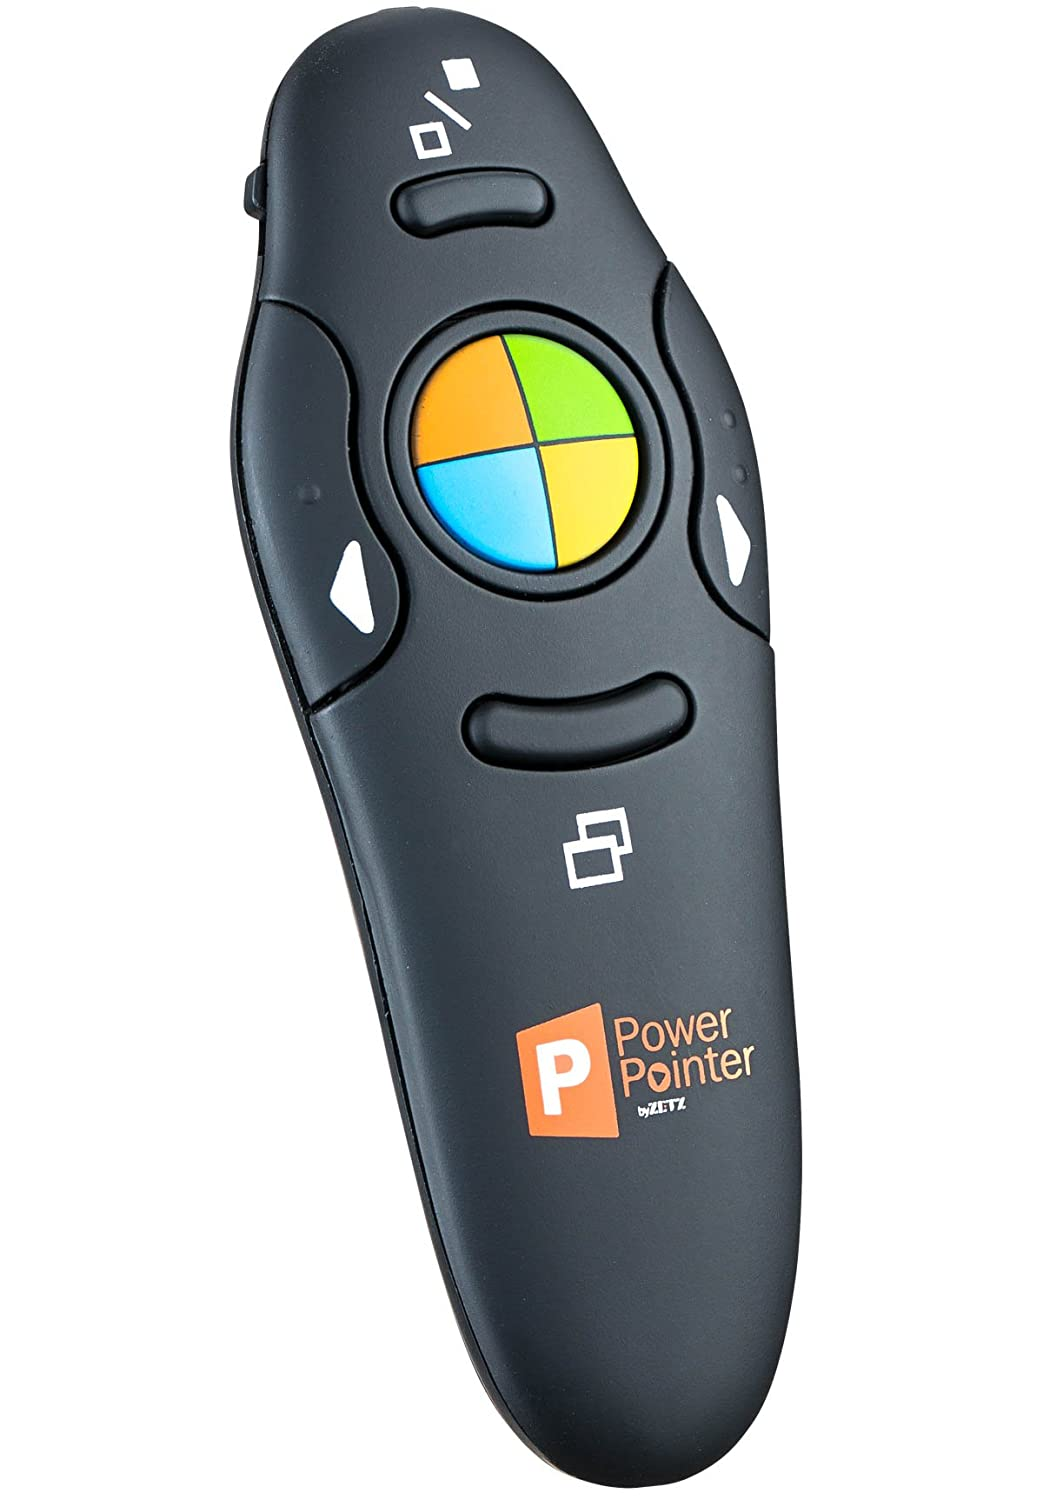 PowerPointer Wireless Presenter PPT Clicker Black, USB Control with Lazer Pointer, for Microsoft Power Point RF 2.4 GHz